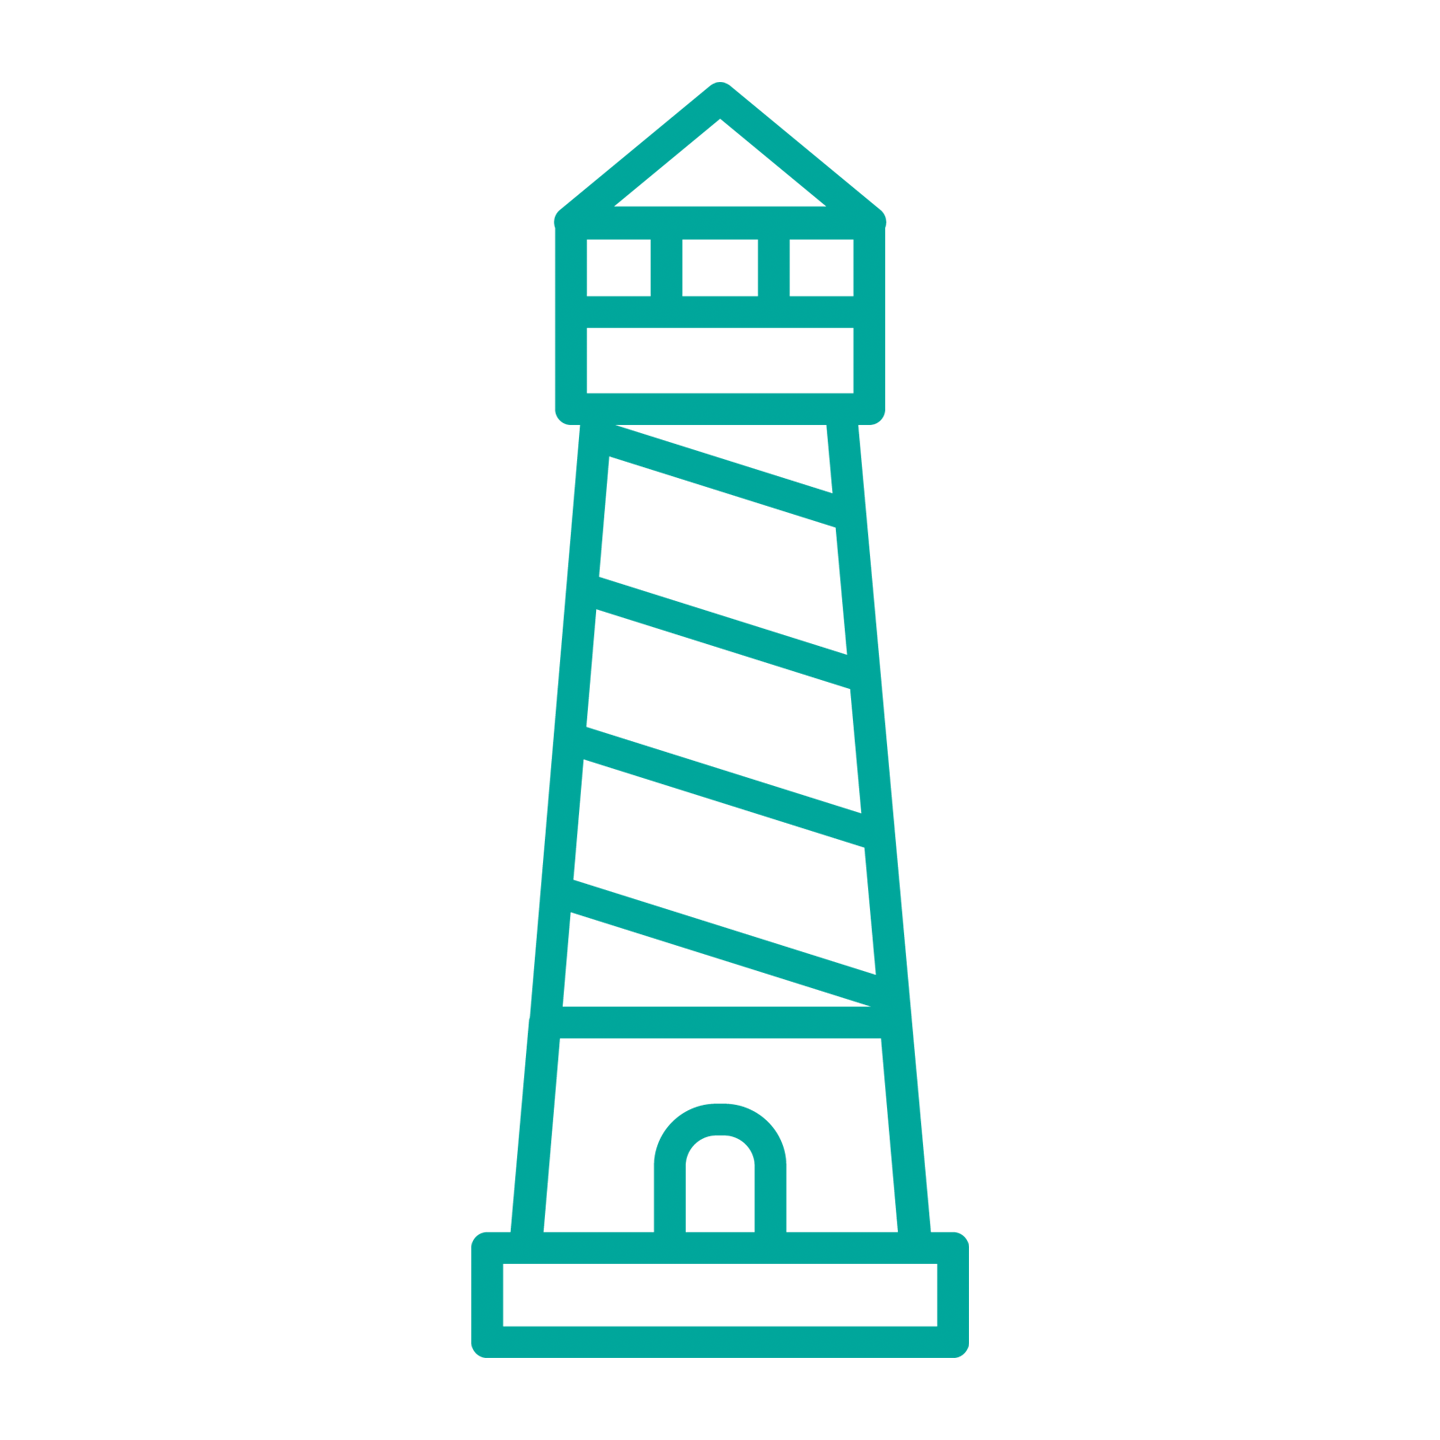 chefs_on_waves_custom_icon_lighthouse_menue_planning